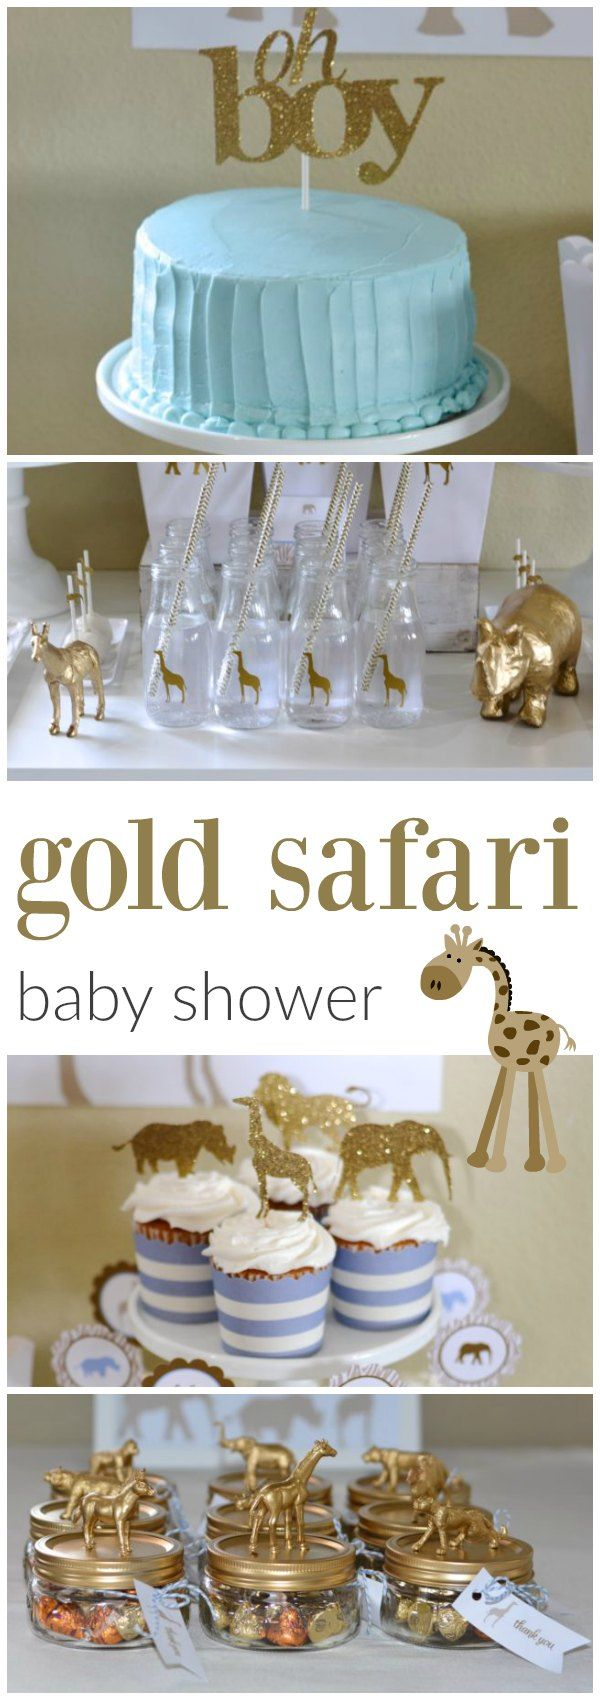 Such a sophisticated safari baby shower #gold                                                                                                                                                                                 More